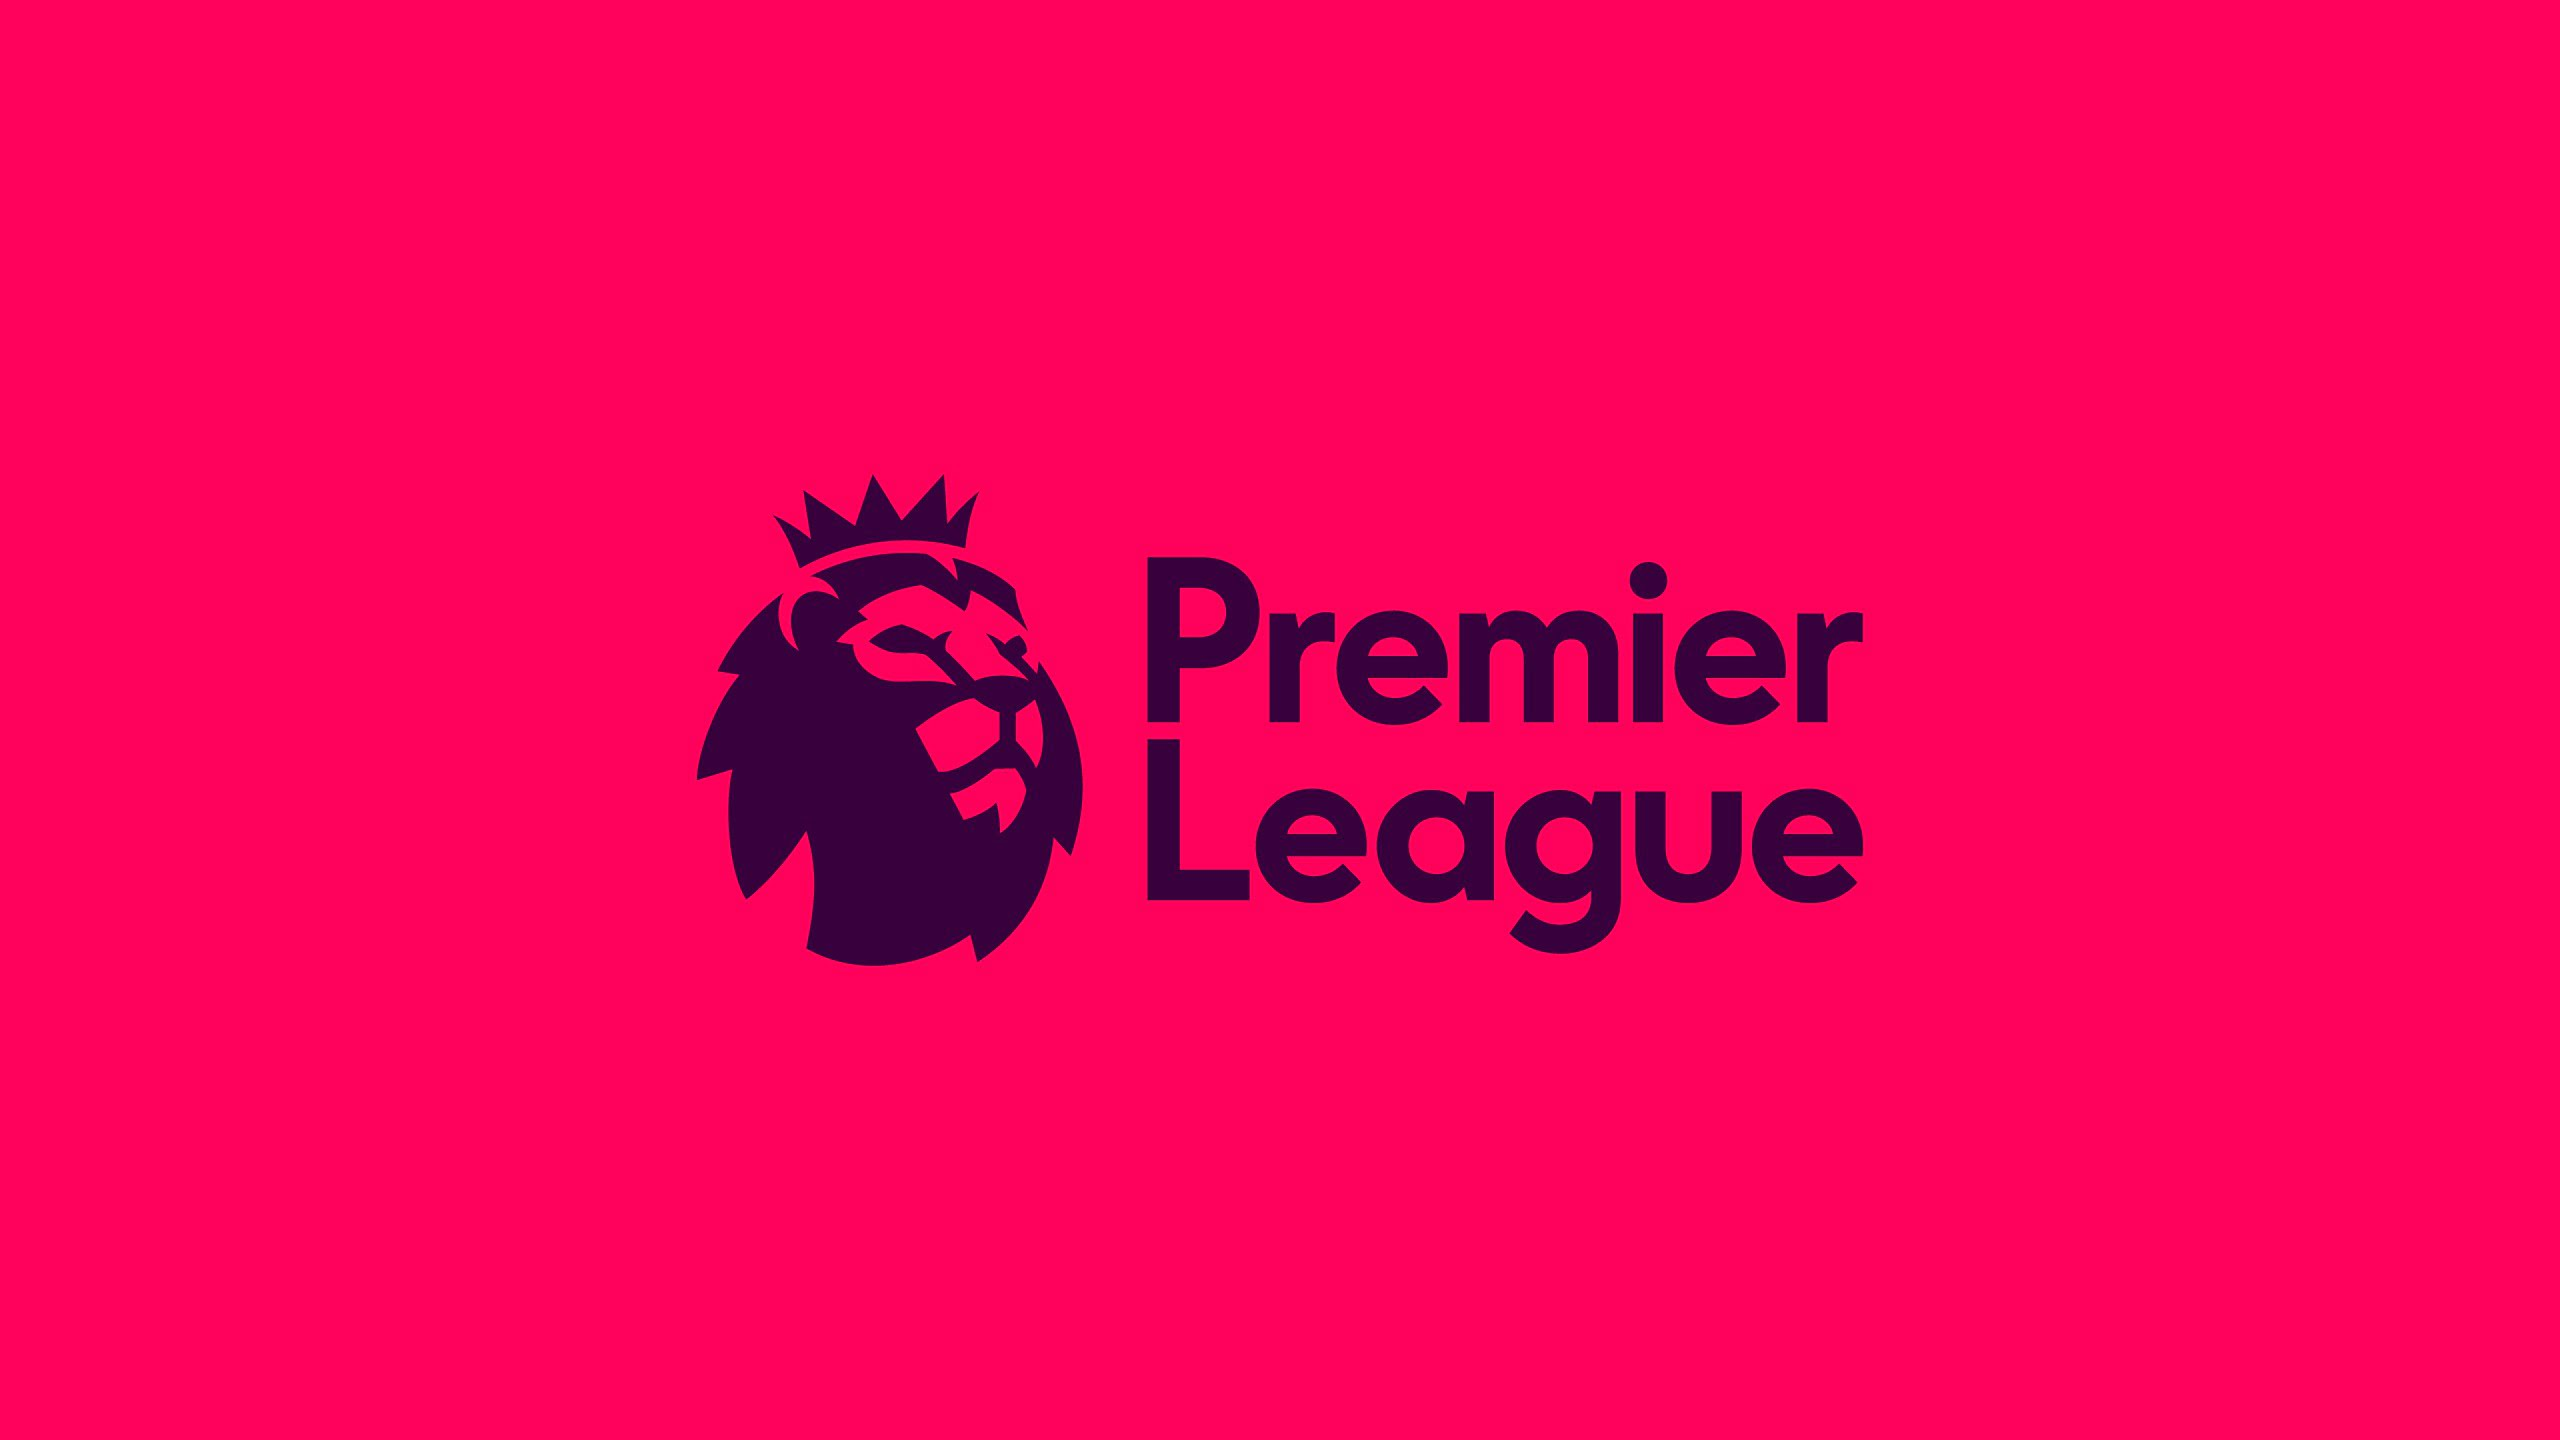 premier league rebrands designstudio 01 - Sun Newspaper Nigeria News Today -